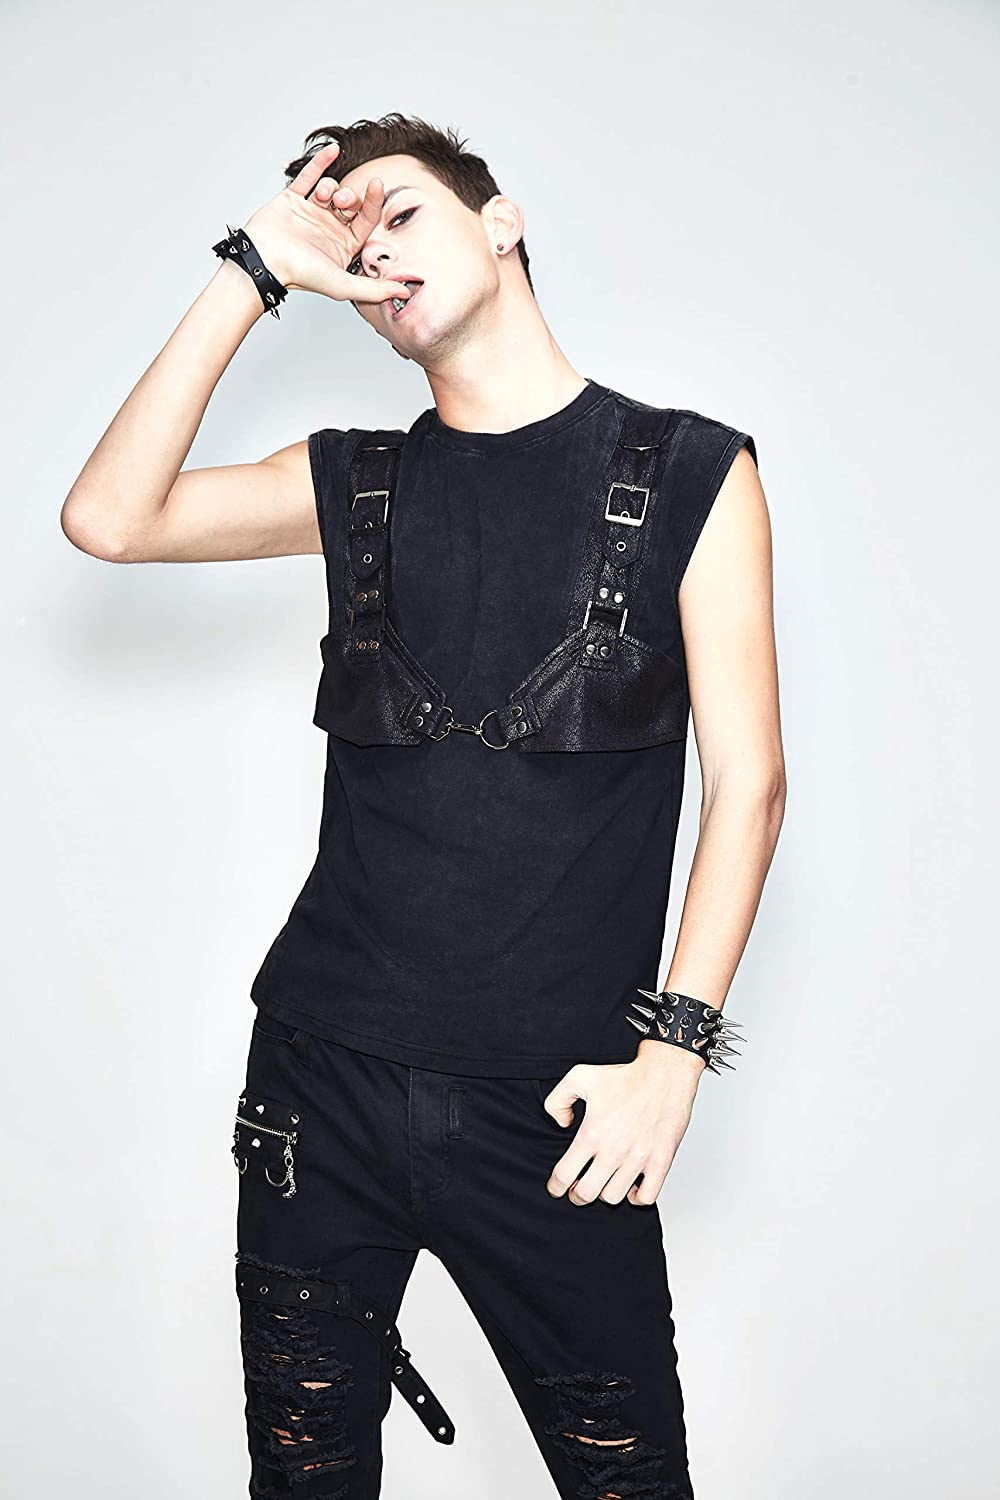 Black S Punk Men Sleeveless Vest with Hat Gothic Leather Straps Decorated Summer Shirt Tops